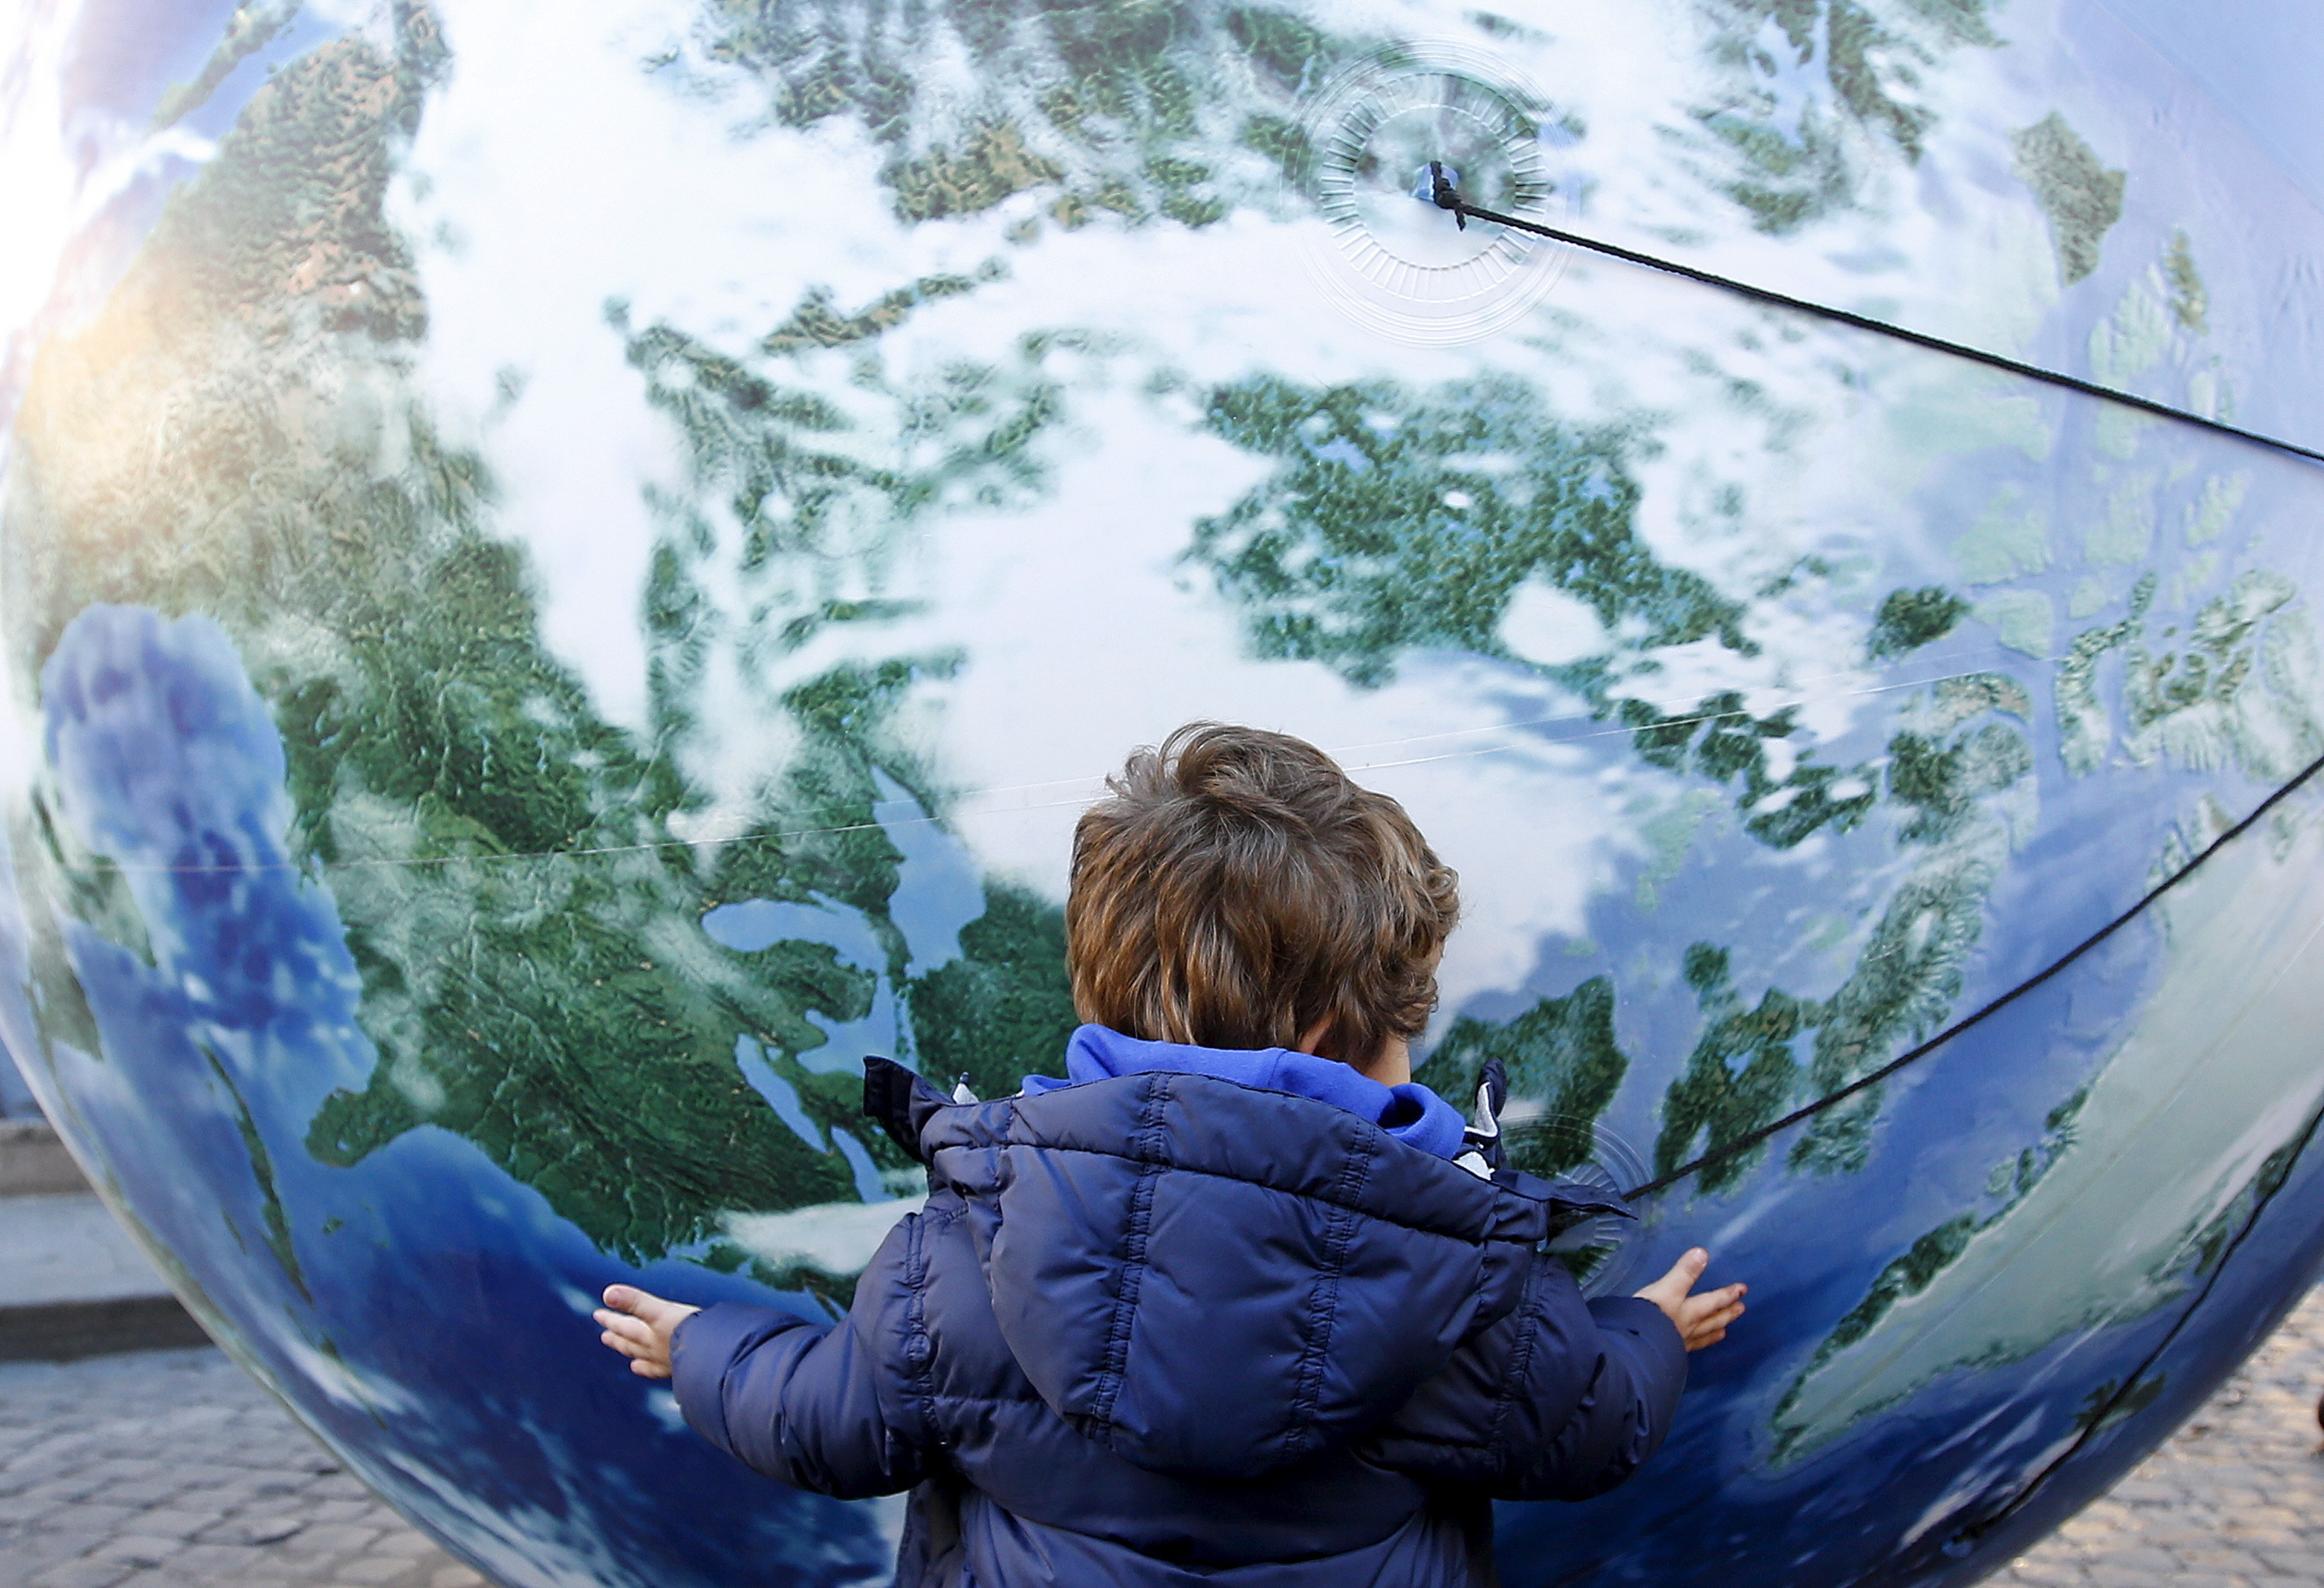 A child embraces a globe shaped balloon during a rally held ahead of the start of the 2015 Paris World Climate Change Conference, known as the COP21 summit, in Rome, Italy , November 29, 2015. REUTERS/Alessandro Bianchi - GF20000078554